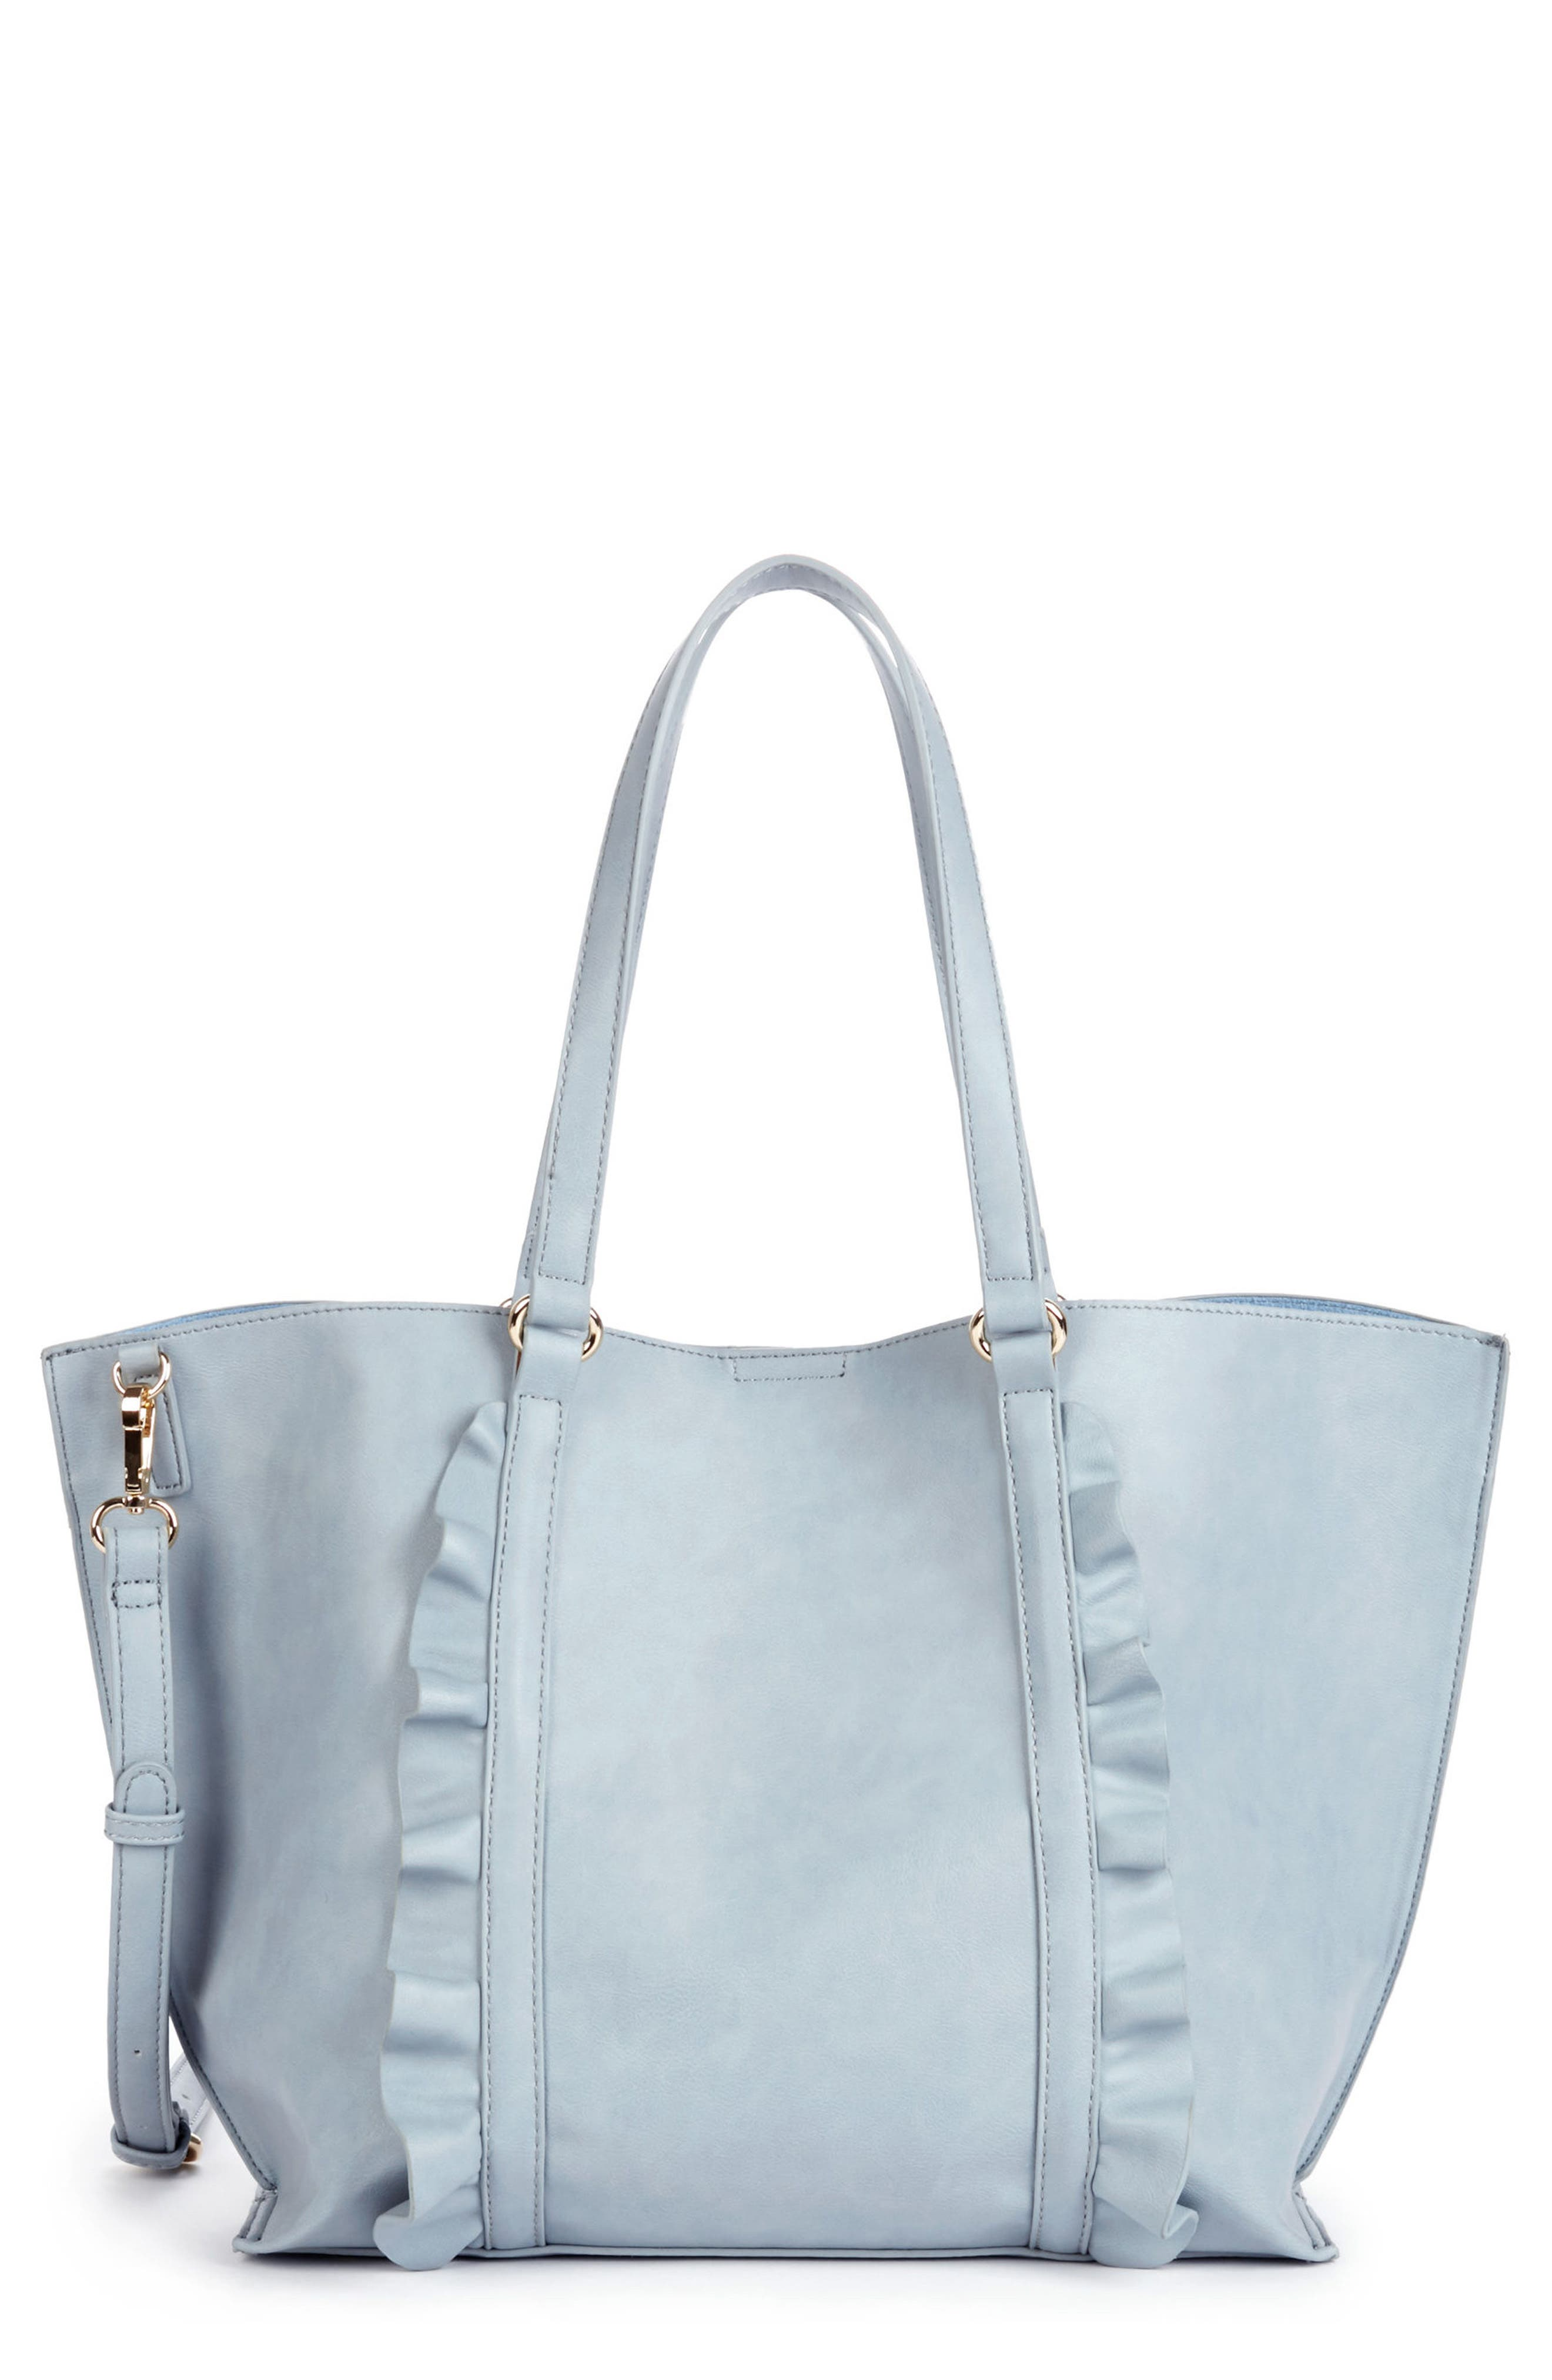 Adelina Ruffled Faux Leather Tote,                             Main thumbnail 1, color,                             Powder Blue